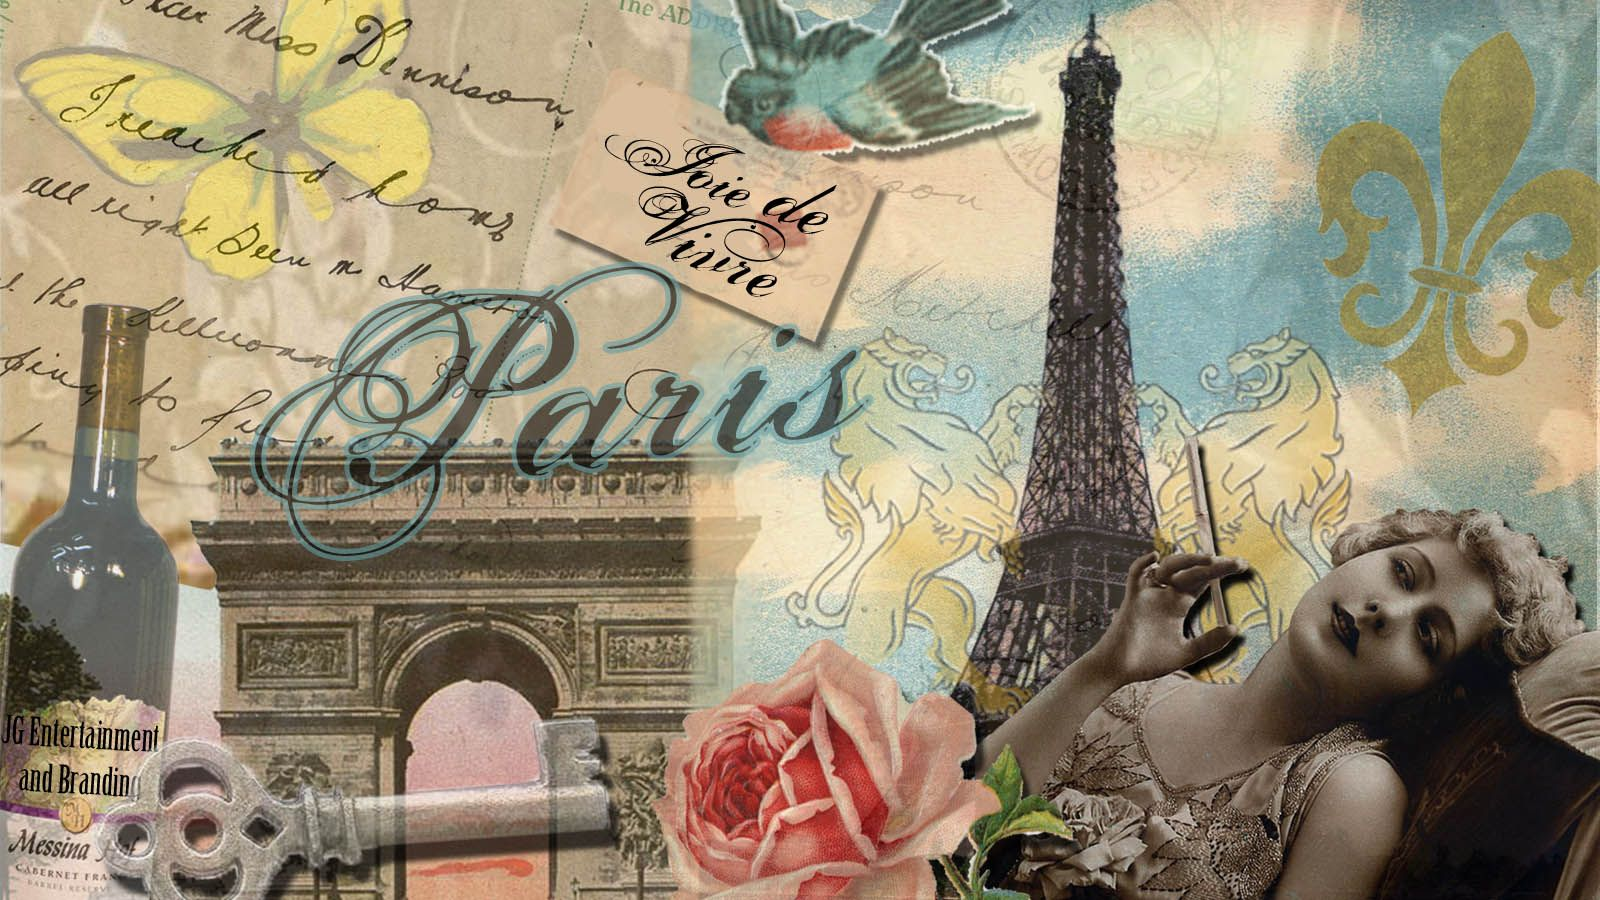 It is all about Paris.